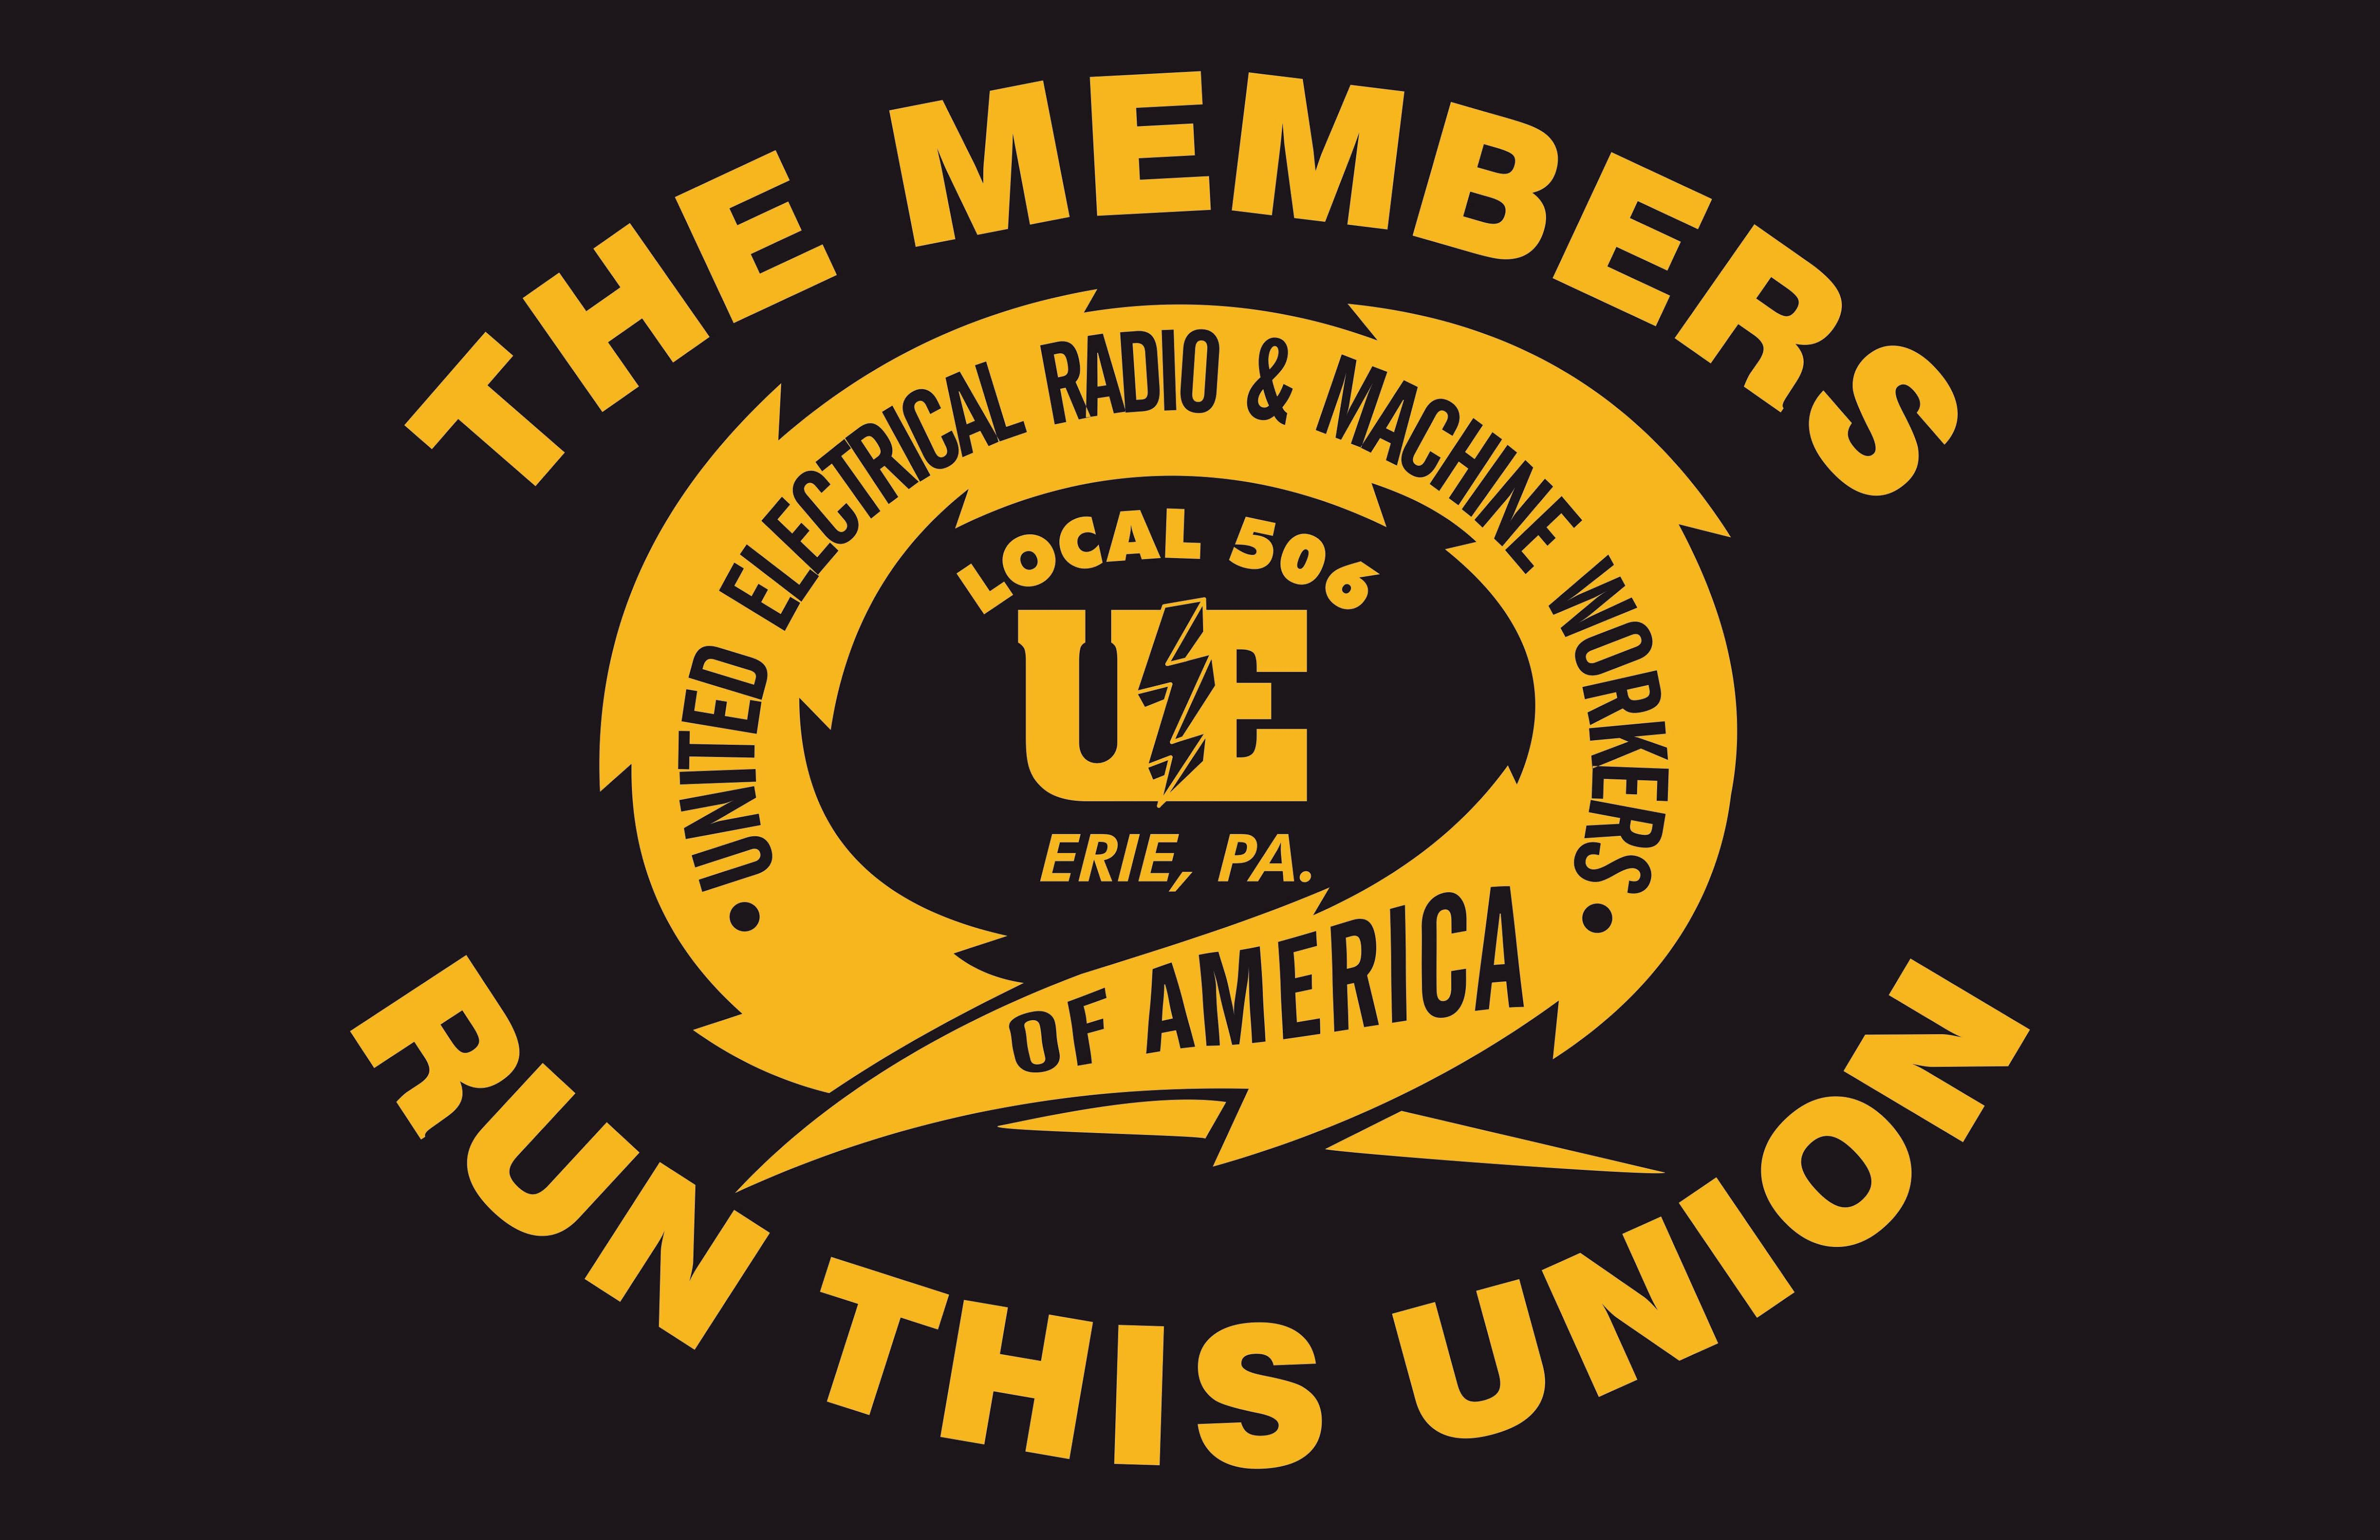 UE-506-Members-Run-This-Union-1